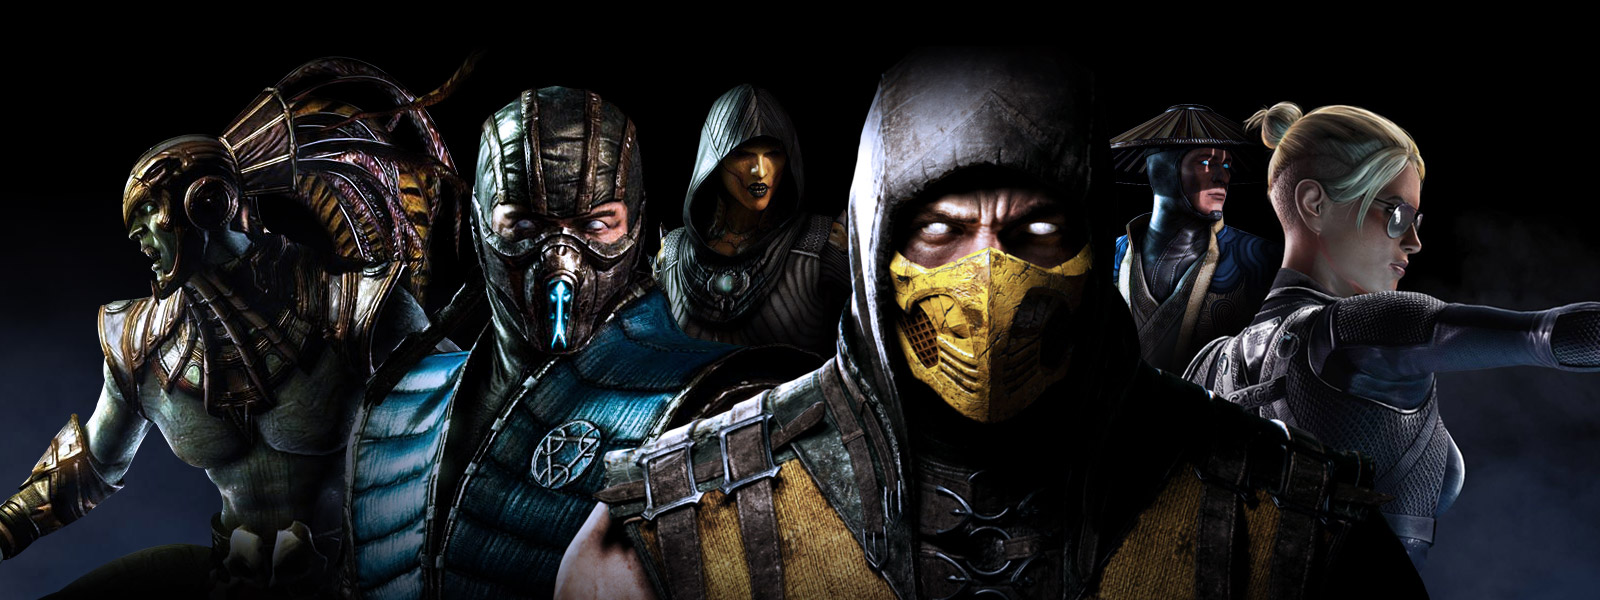 10. X. Mortal Kombat X Review